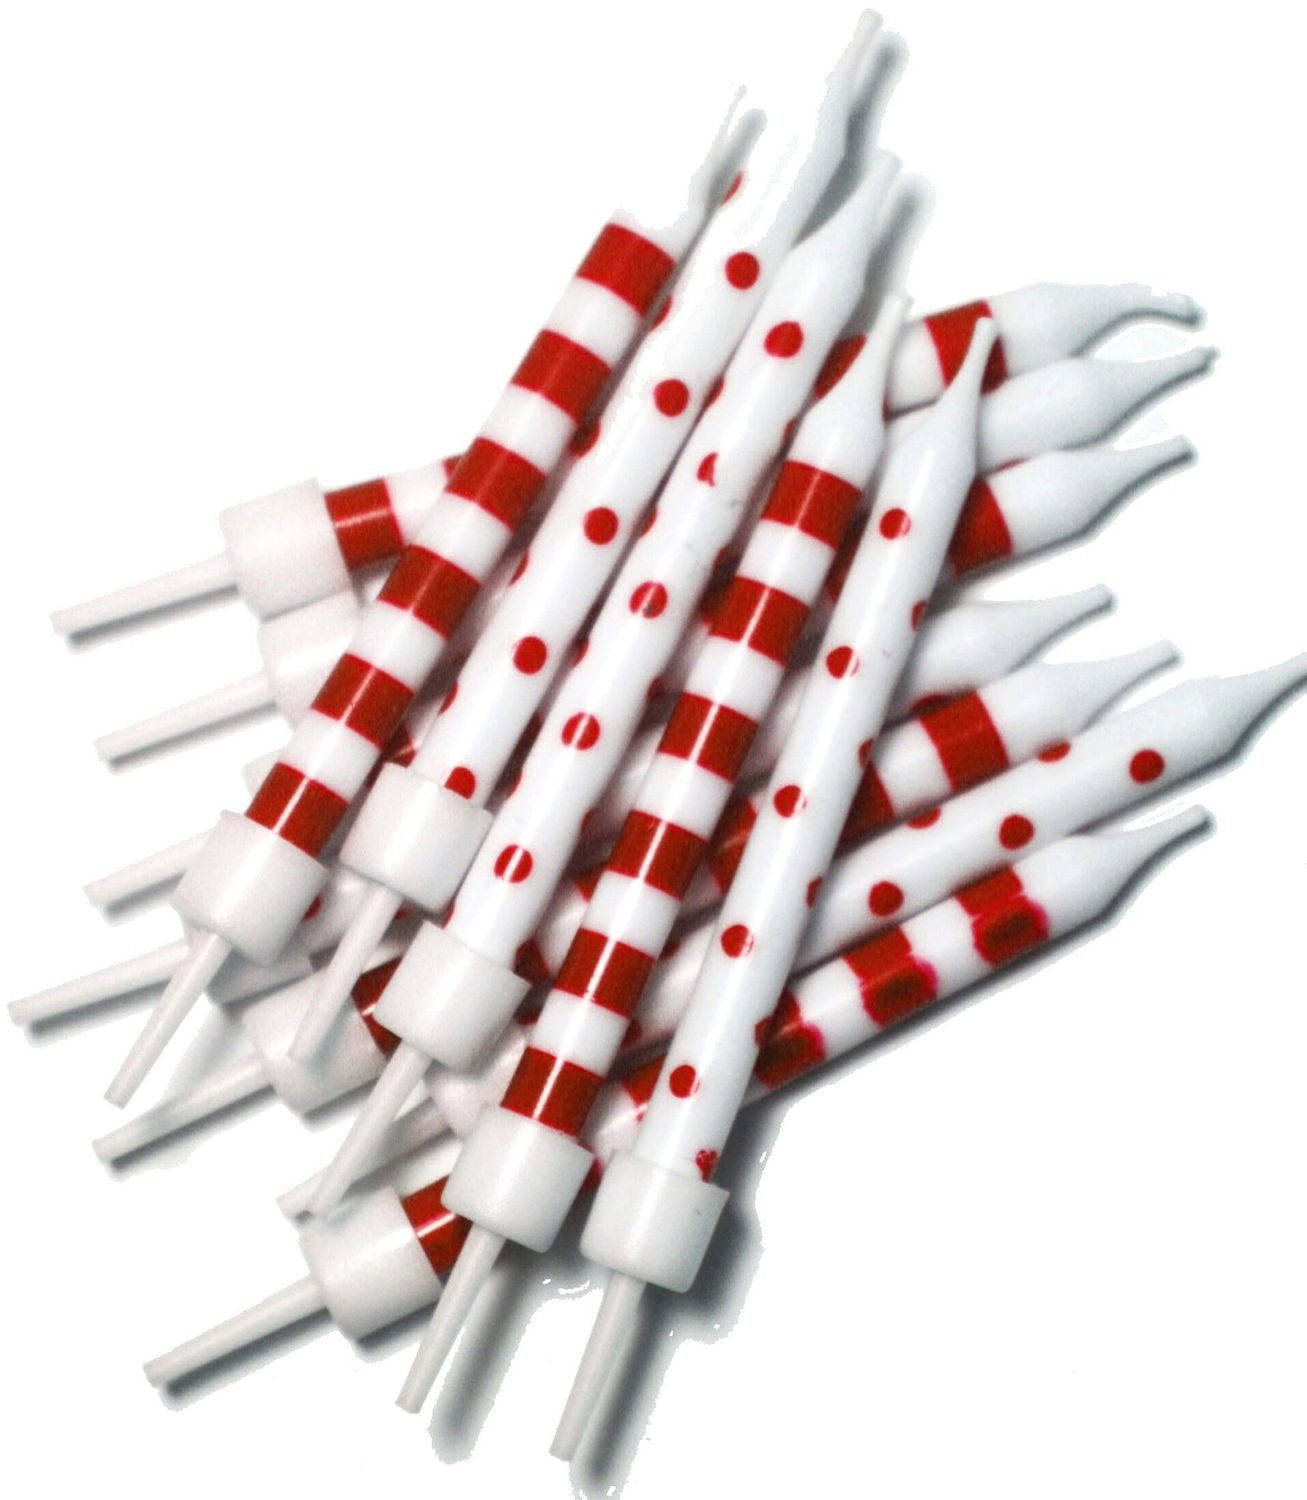 By AH - Candles - Spot & Stripe Red & White set of 12 - Κεράκια με Ρίγες & Βούλες Λευκά & Κόκκινα - 12τεμ/πακέτο - 2,5εκ